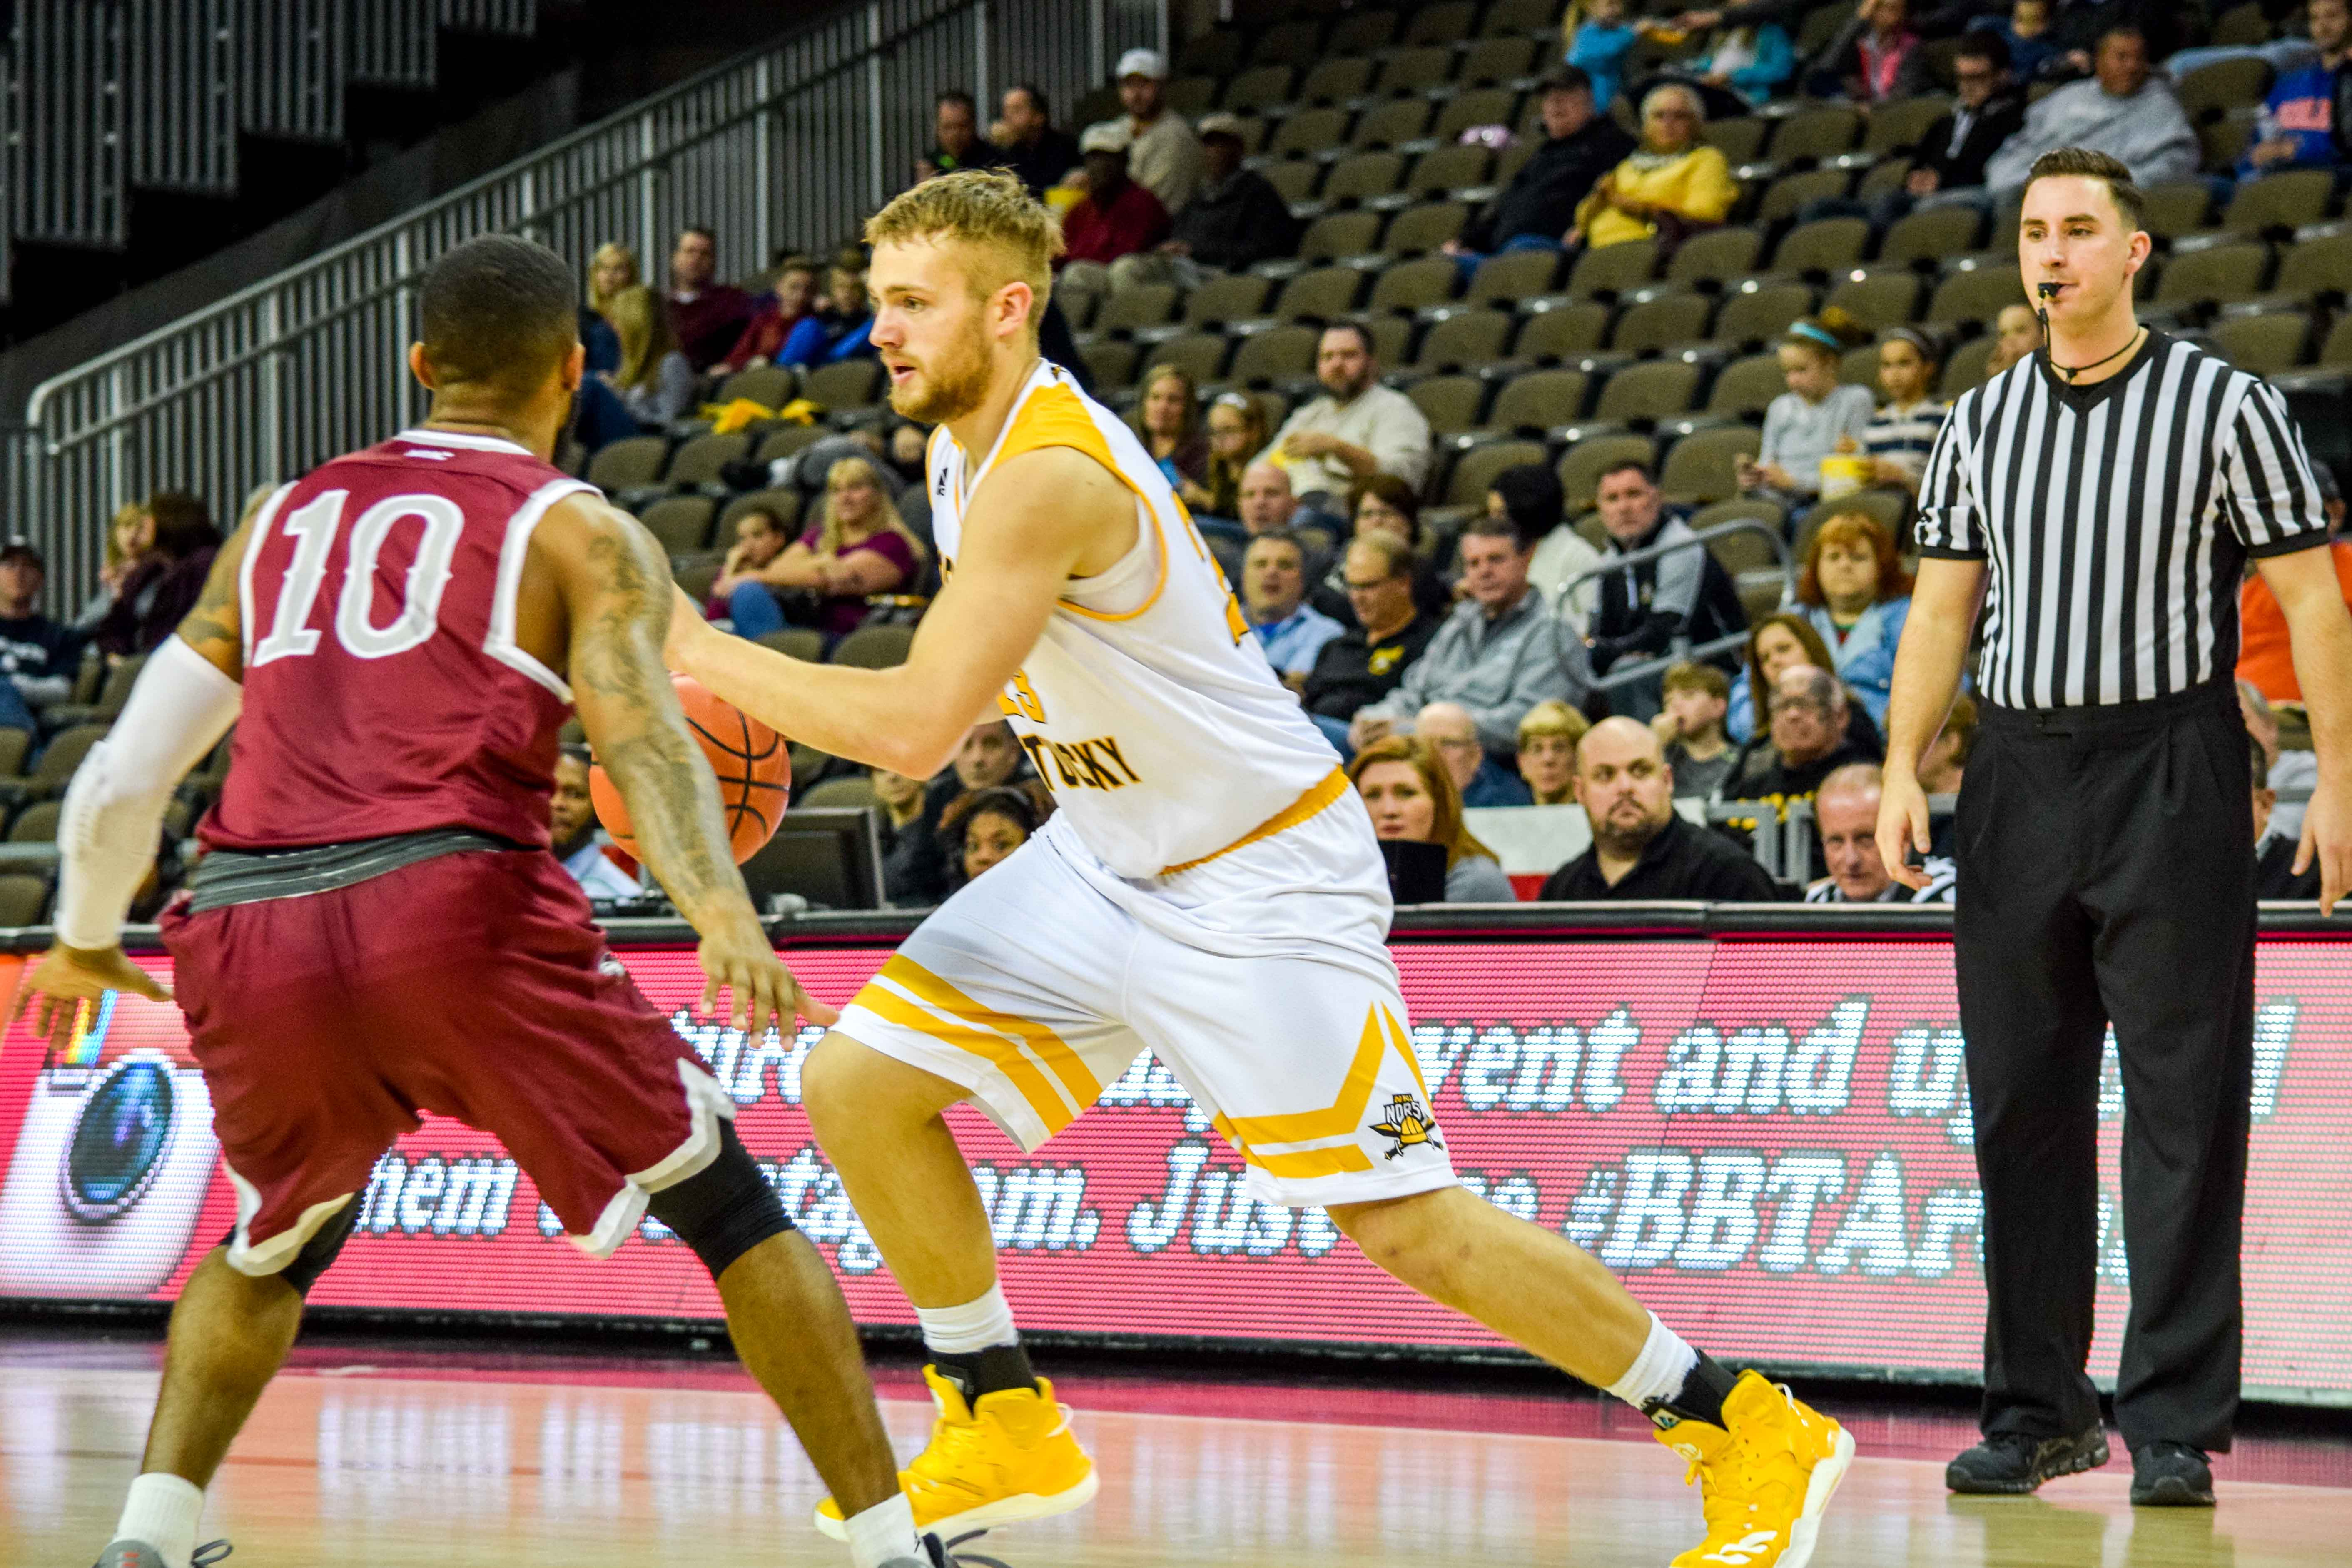 NKU's Carson Williams (23) had a double-double Wednesday against Brescia.